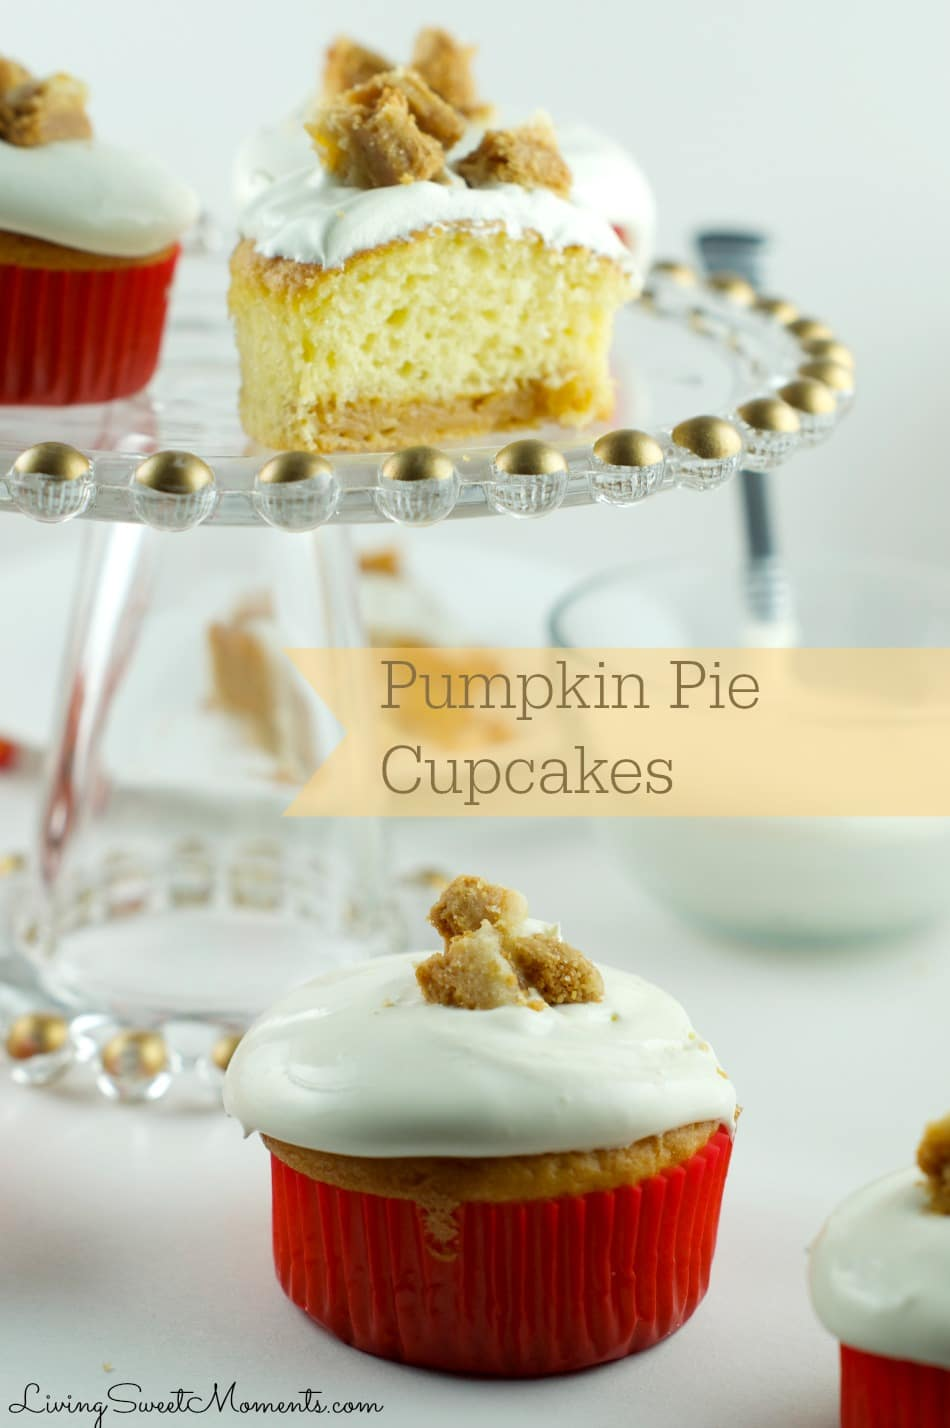 These Pumpkin Pie Cupcakes taste amazing. Delicious cake filled with pumpkin pie and topped with toasted crust. Perfect for fall or thanksgiving!